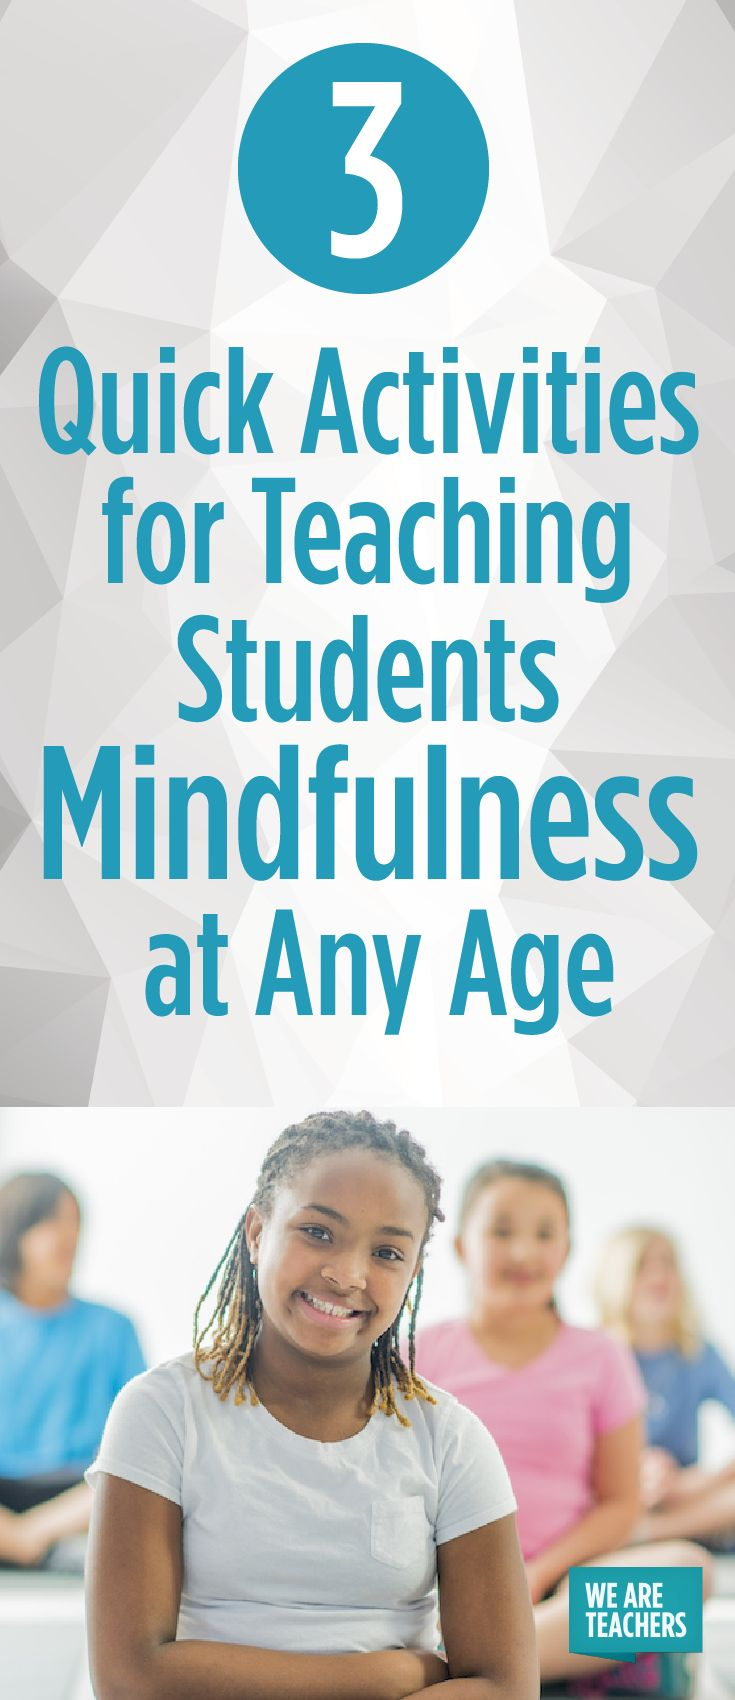 3 Quick Activities for Teaching Students Mindfulness at Any Age - WeAreTeachers